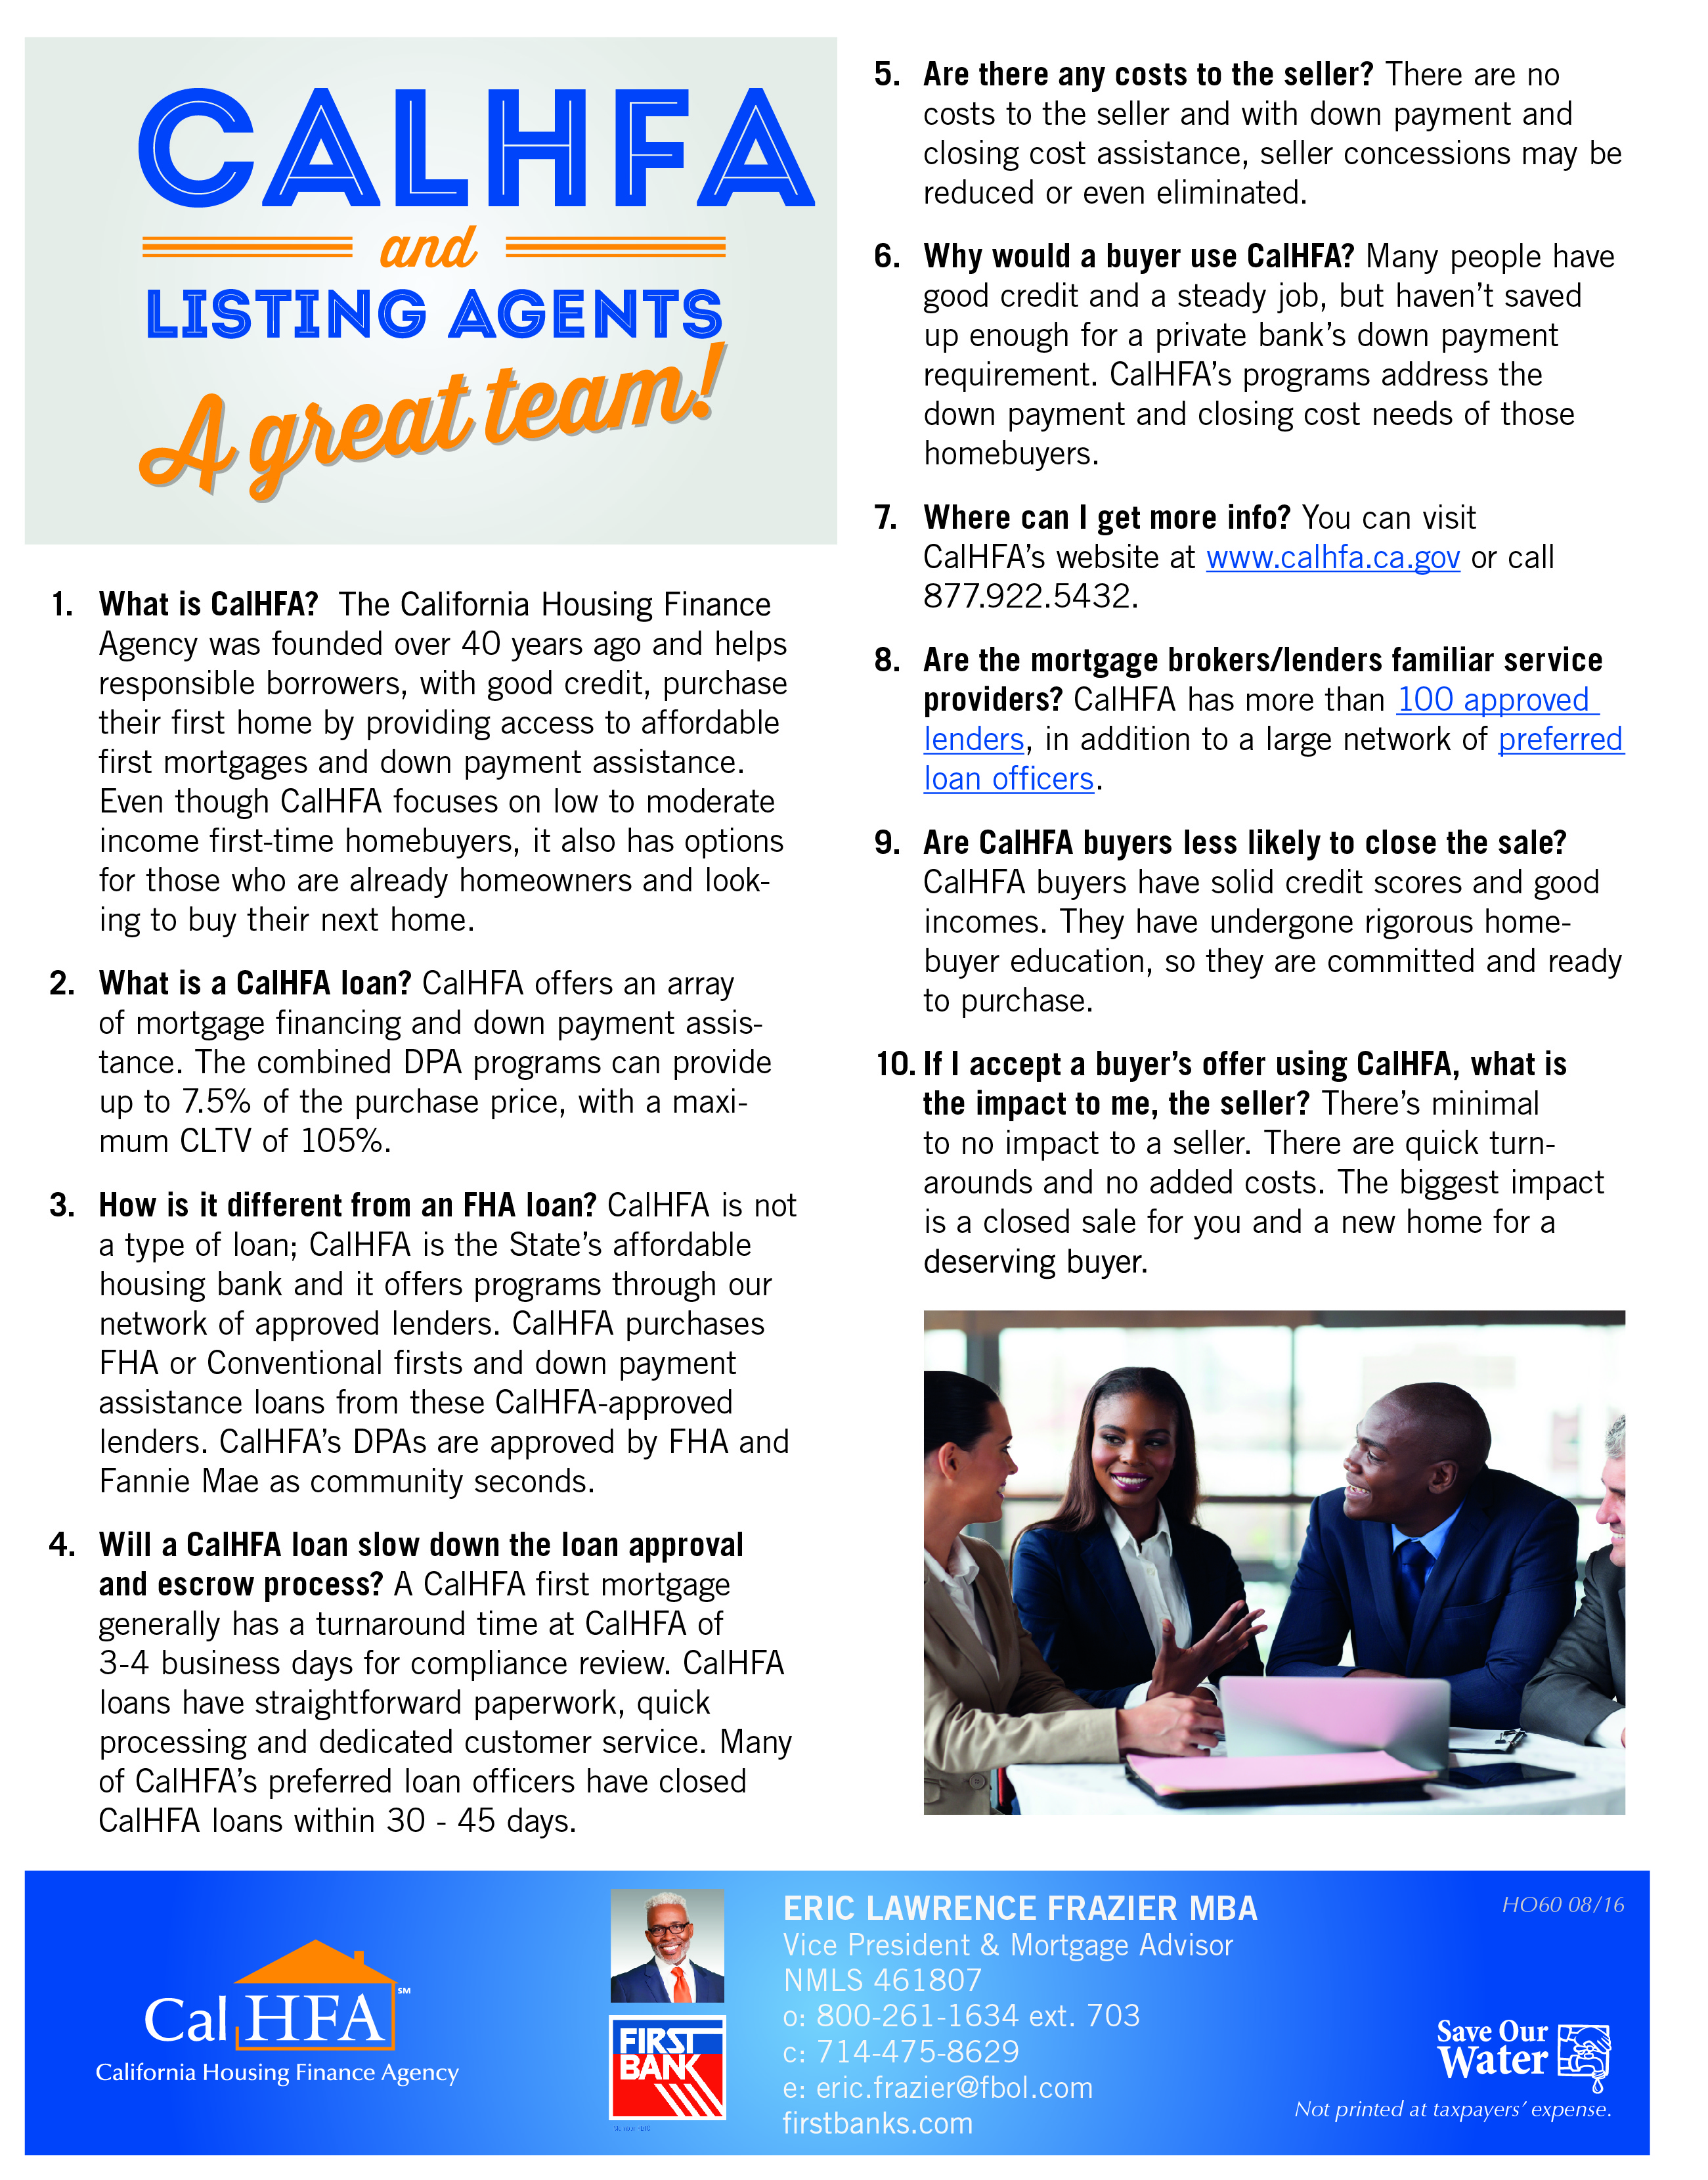 CALHFA and Listing agents